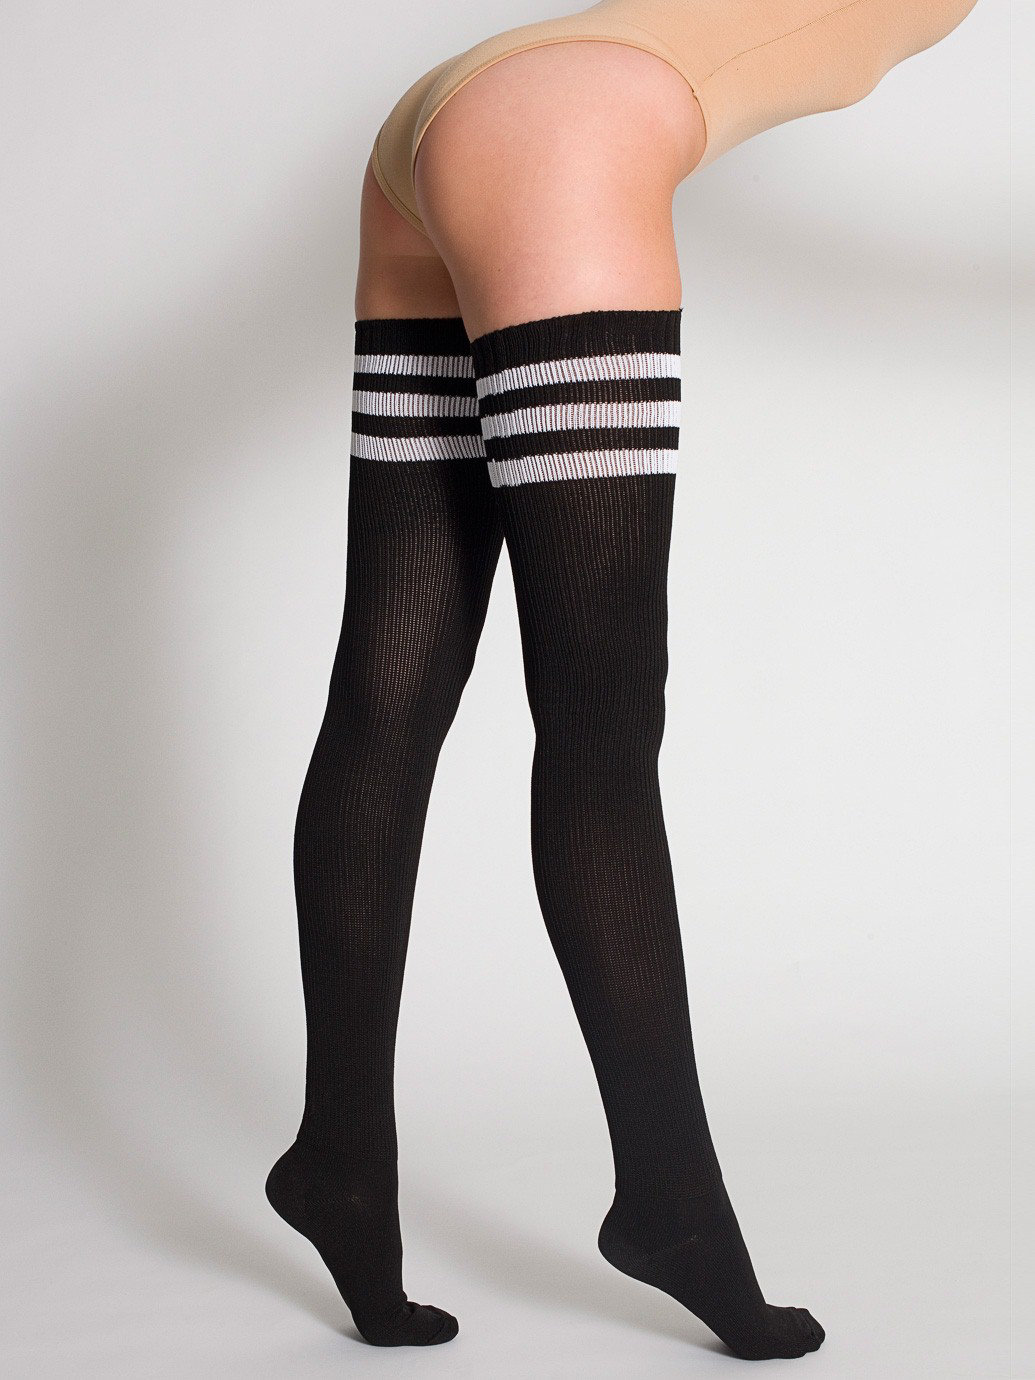 Free shipping BOTH ways on thigh high, from our vast selection of styles. Fast delivery, and 24/7/ real-person service with a smile. Click or call